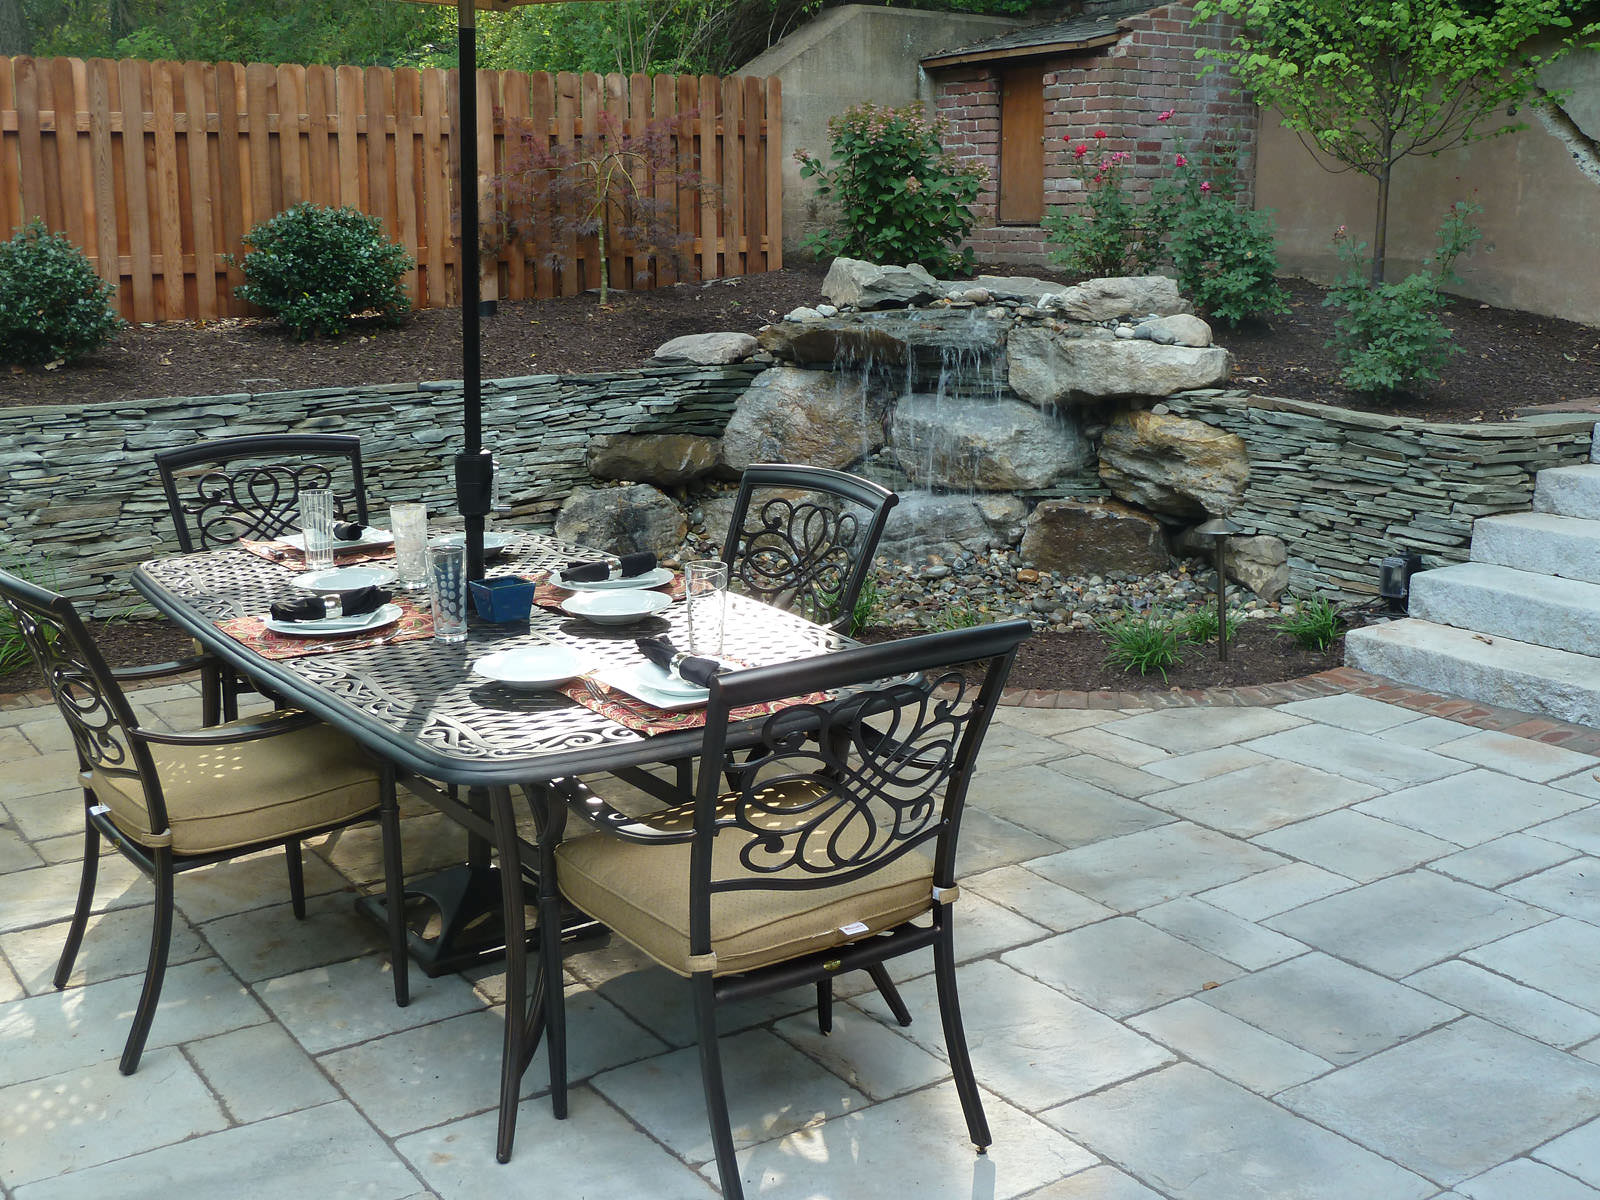 This al fresco dining area is beautifully complimented by the soothing sound from the adjacent trickling water feature that seamlessly blends right into the hillside.